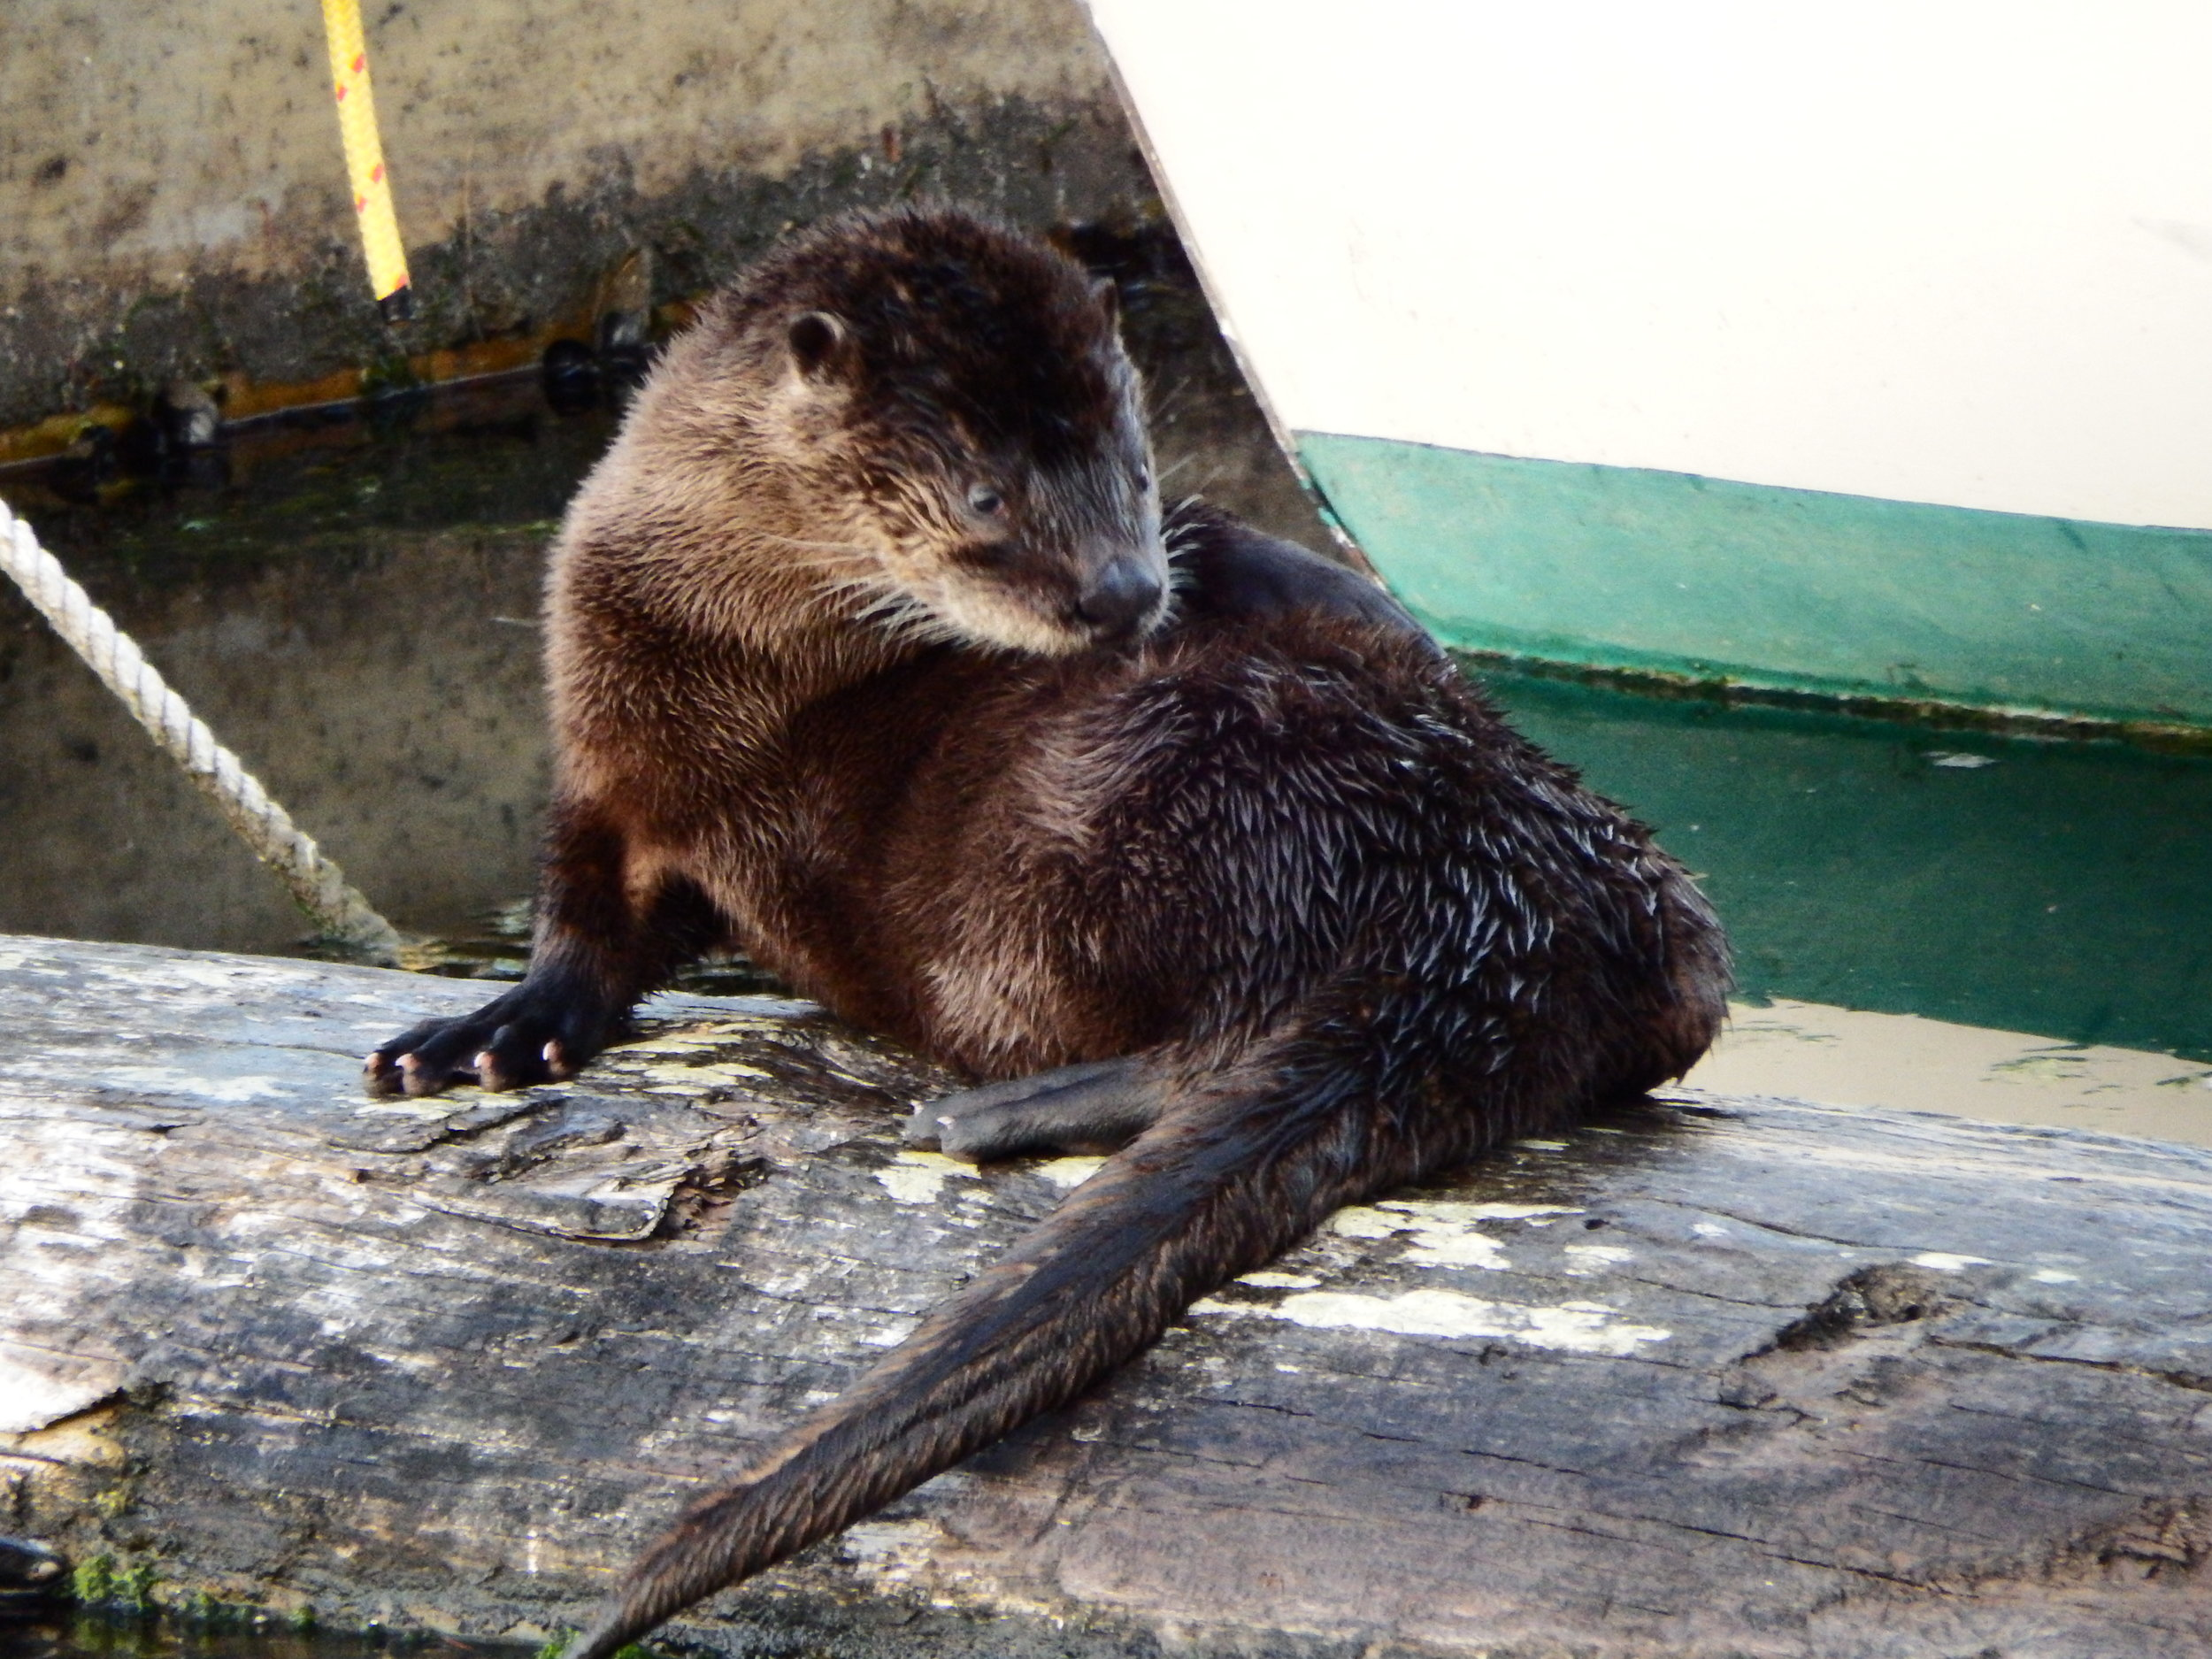 Is Otter About to Have a Great Scratch or Is His Fur Just That Interesting?